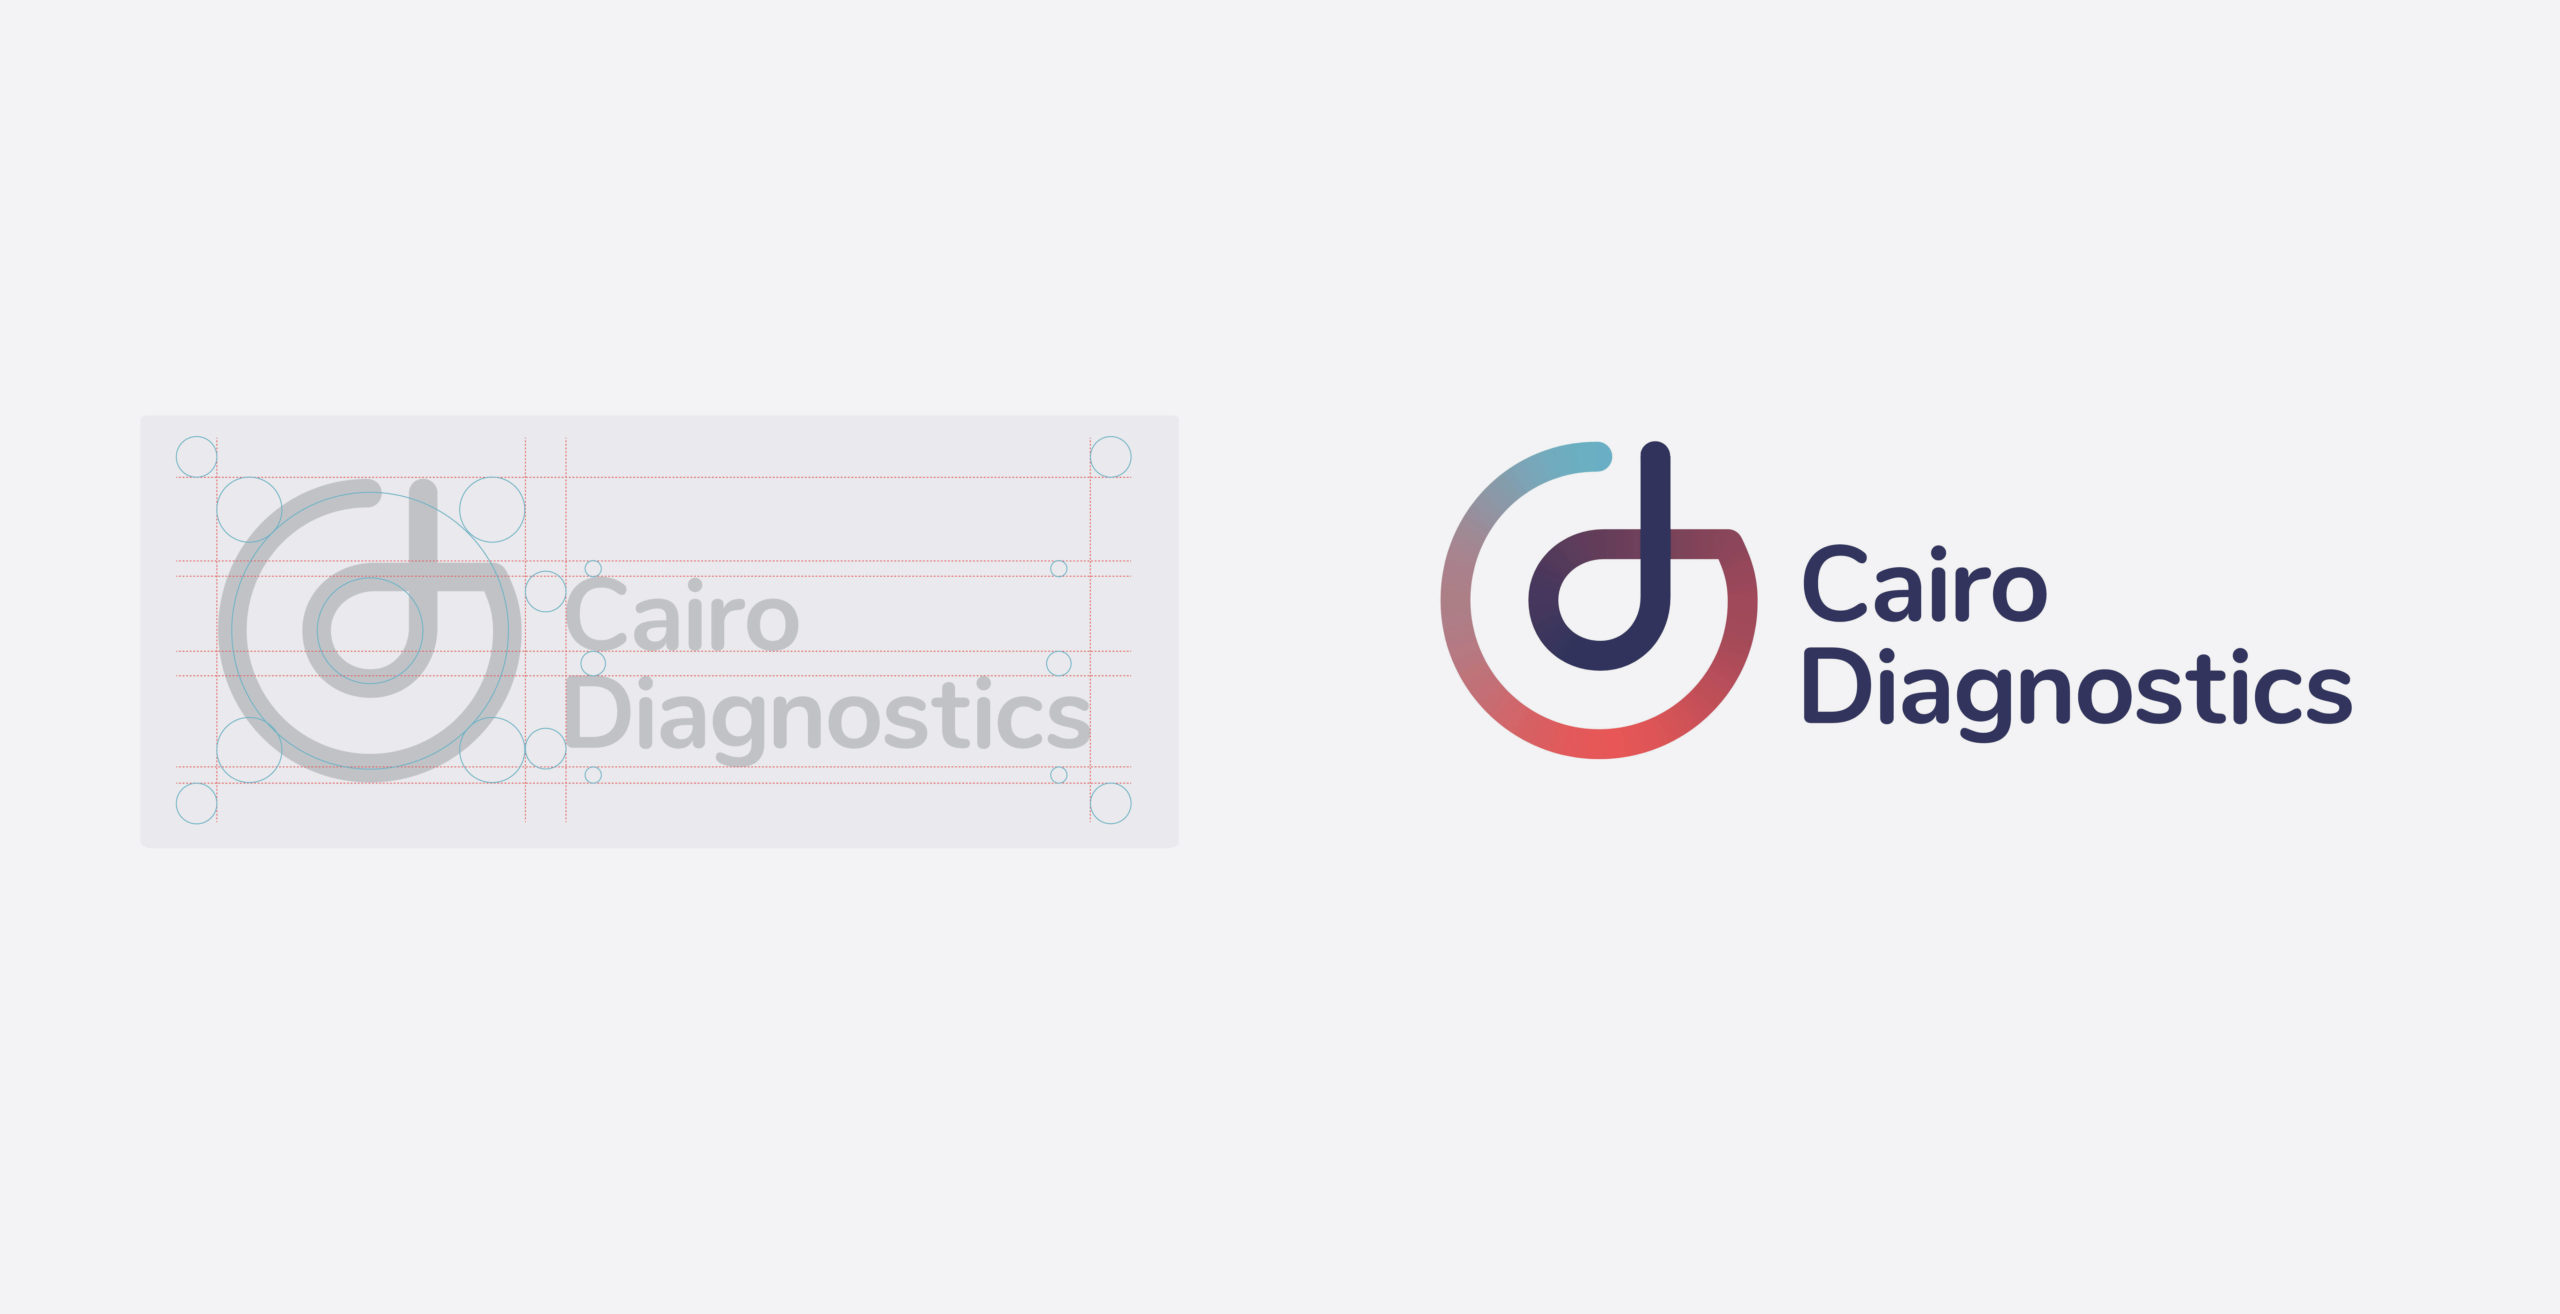 Cairo Diagnostics New Logo